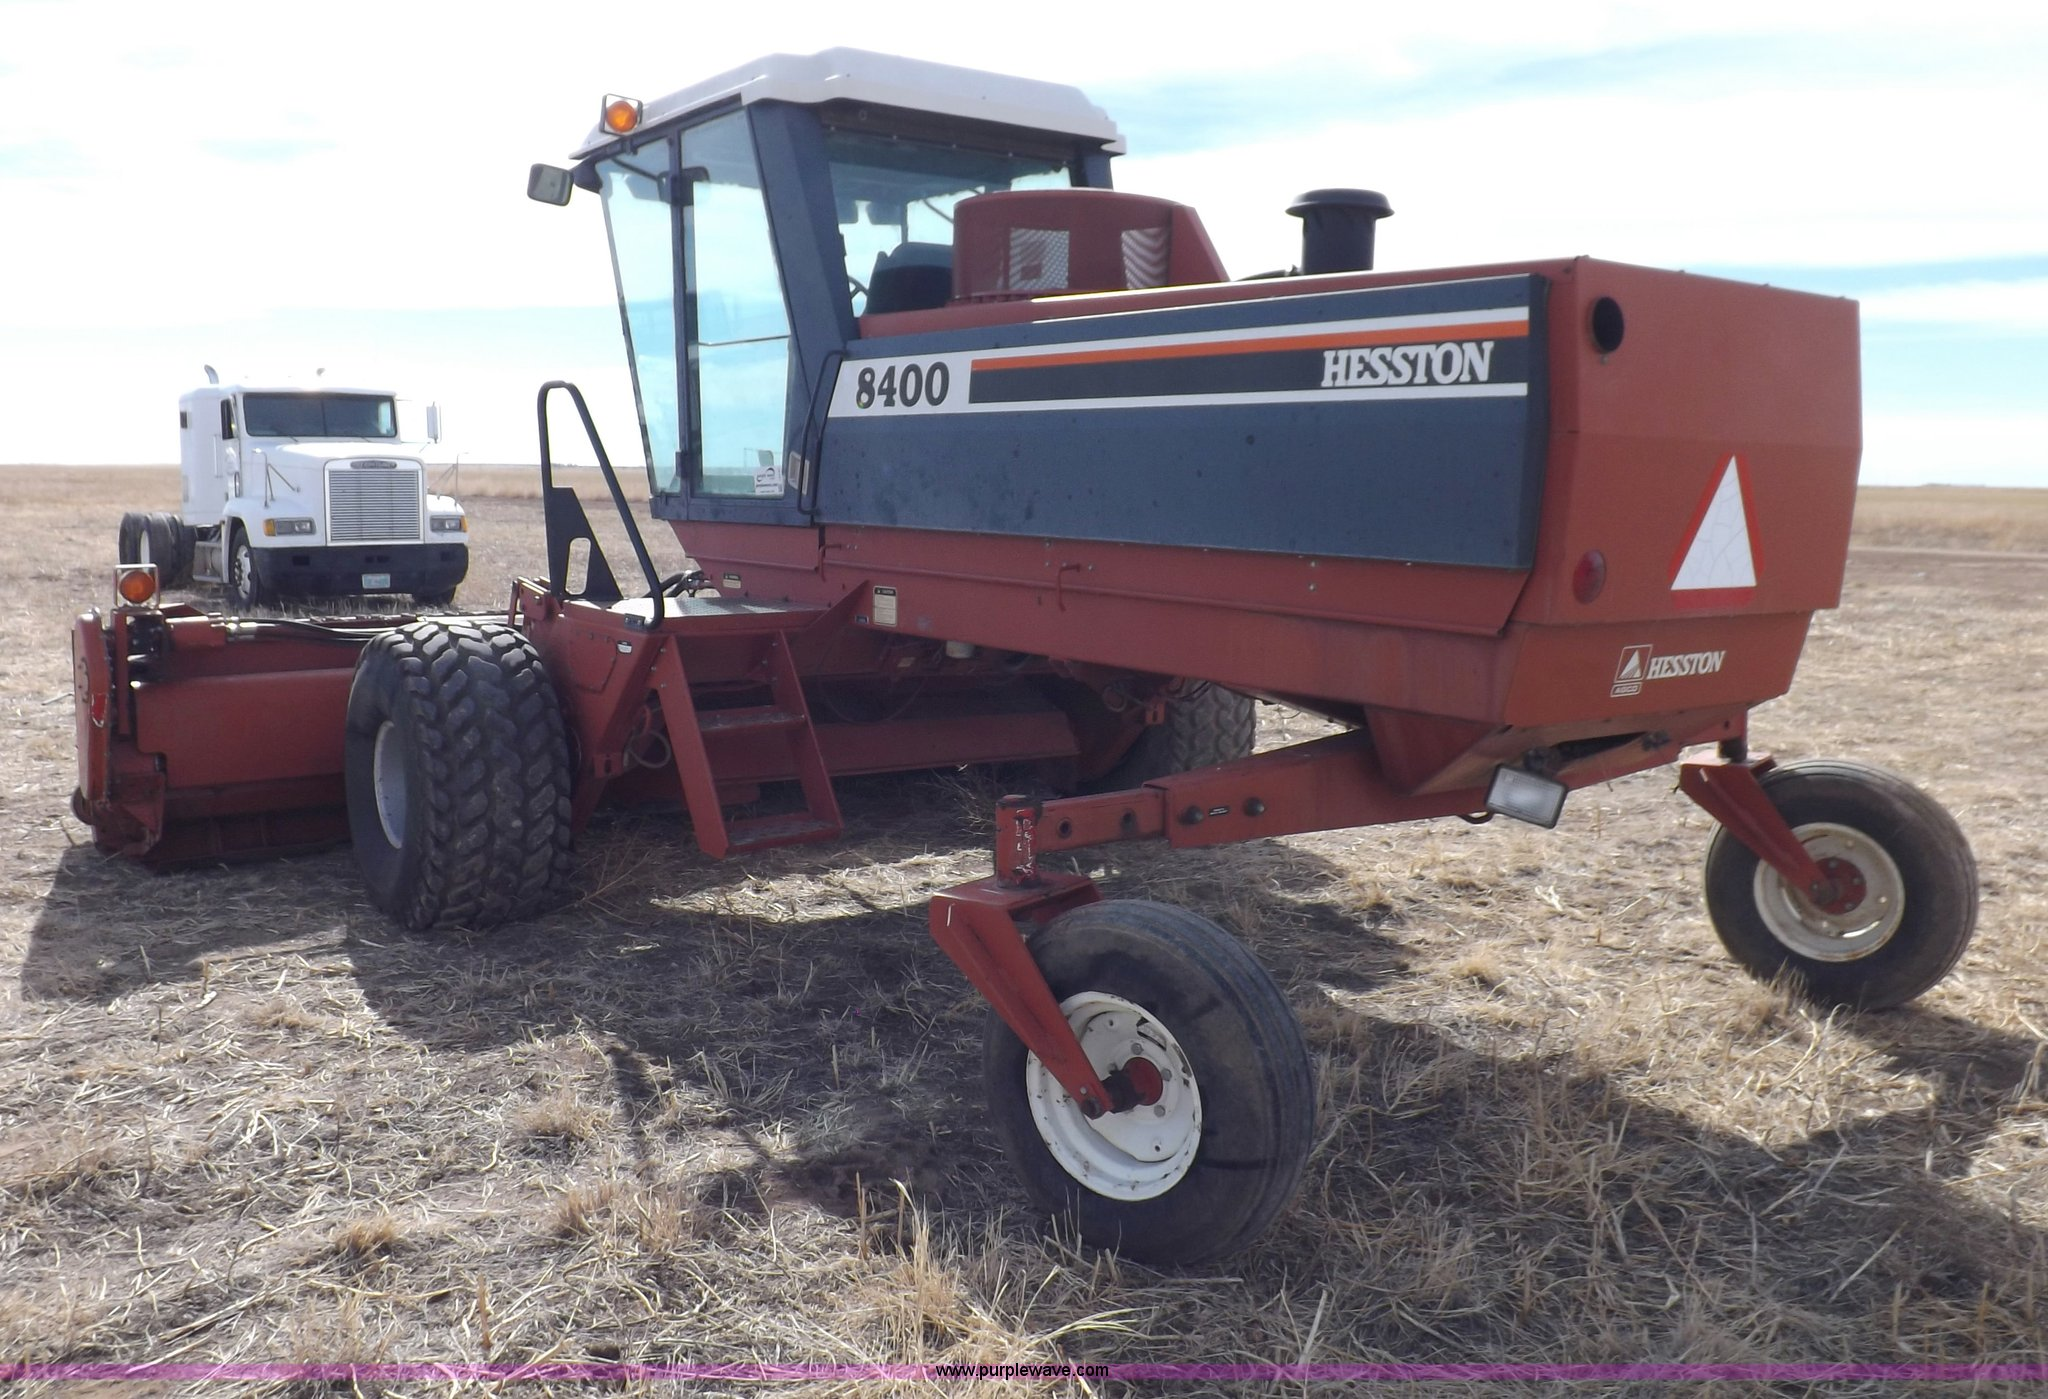 1994 Hesston 8400 swather | Item I9137 | SOLD! March 26 Ag E